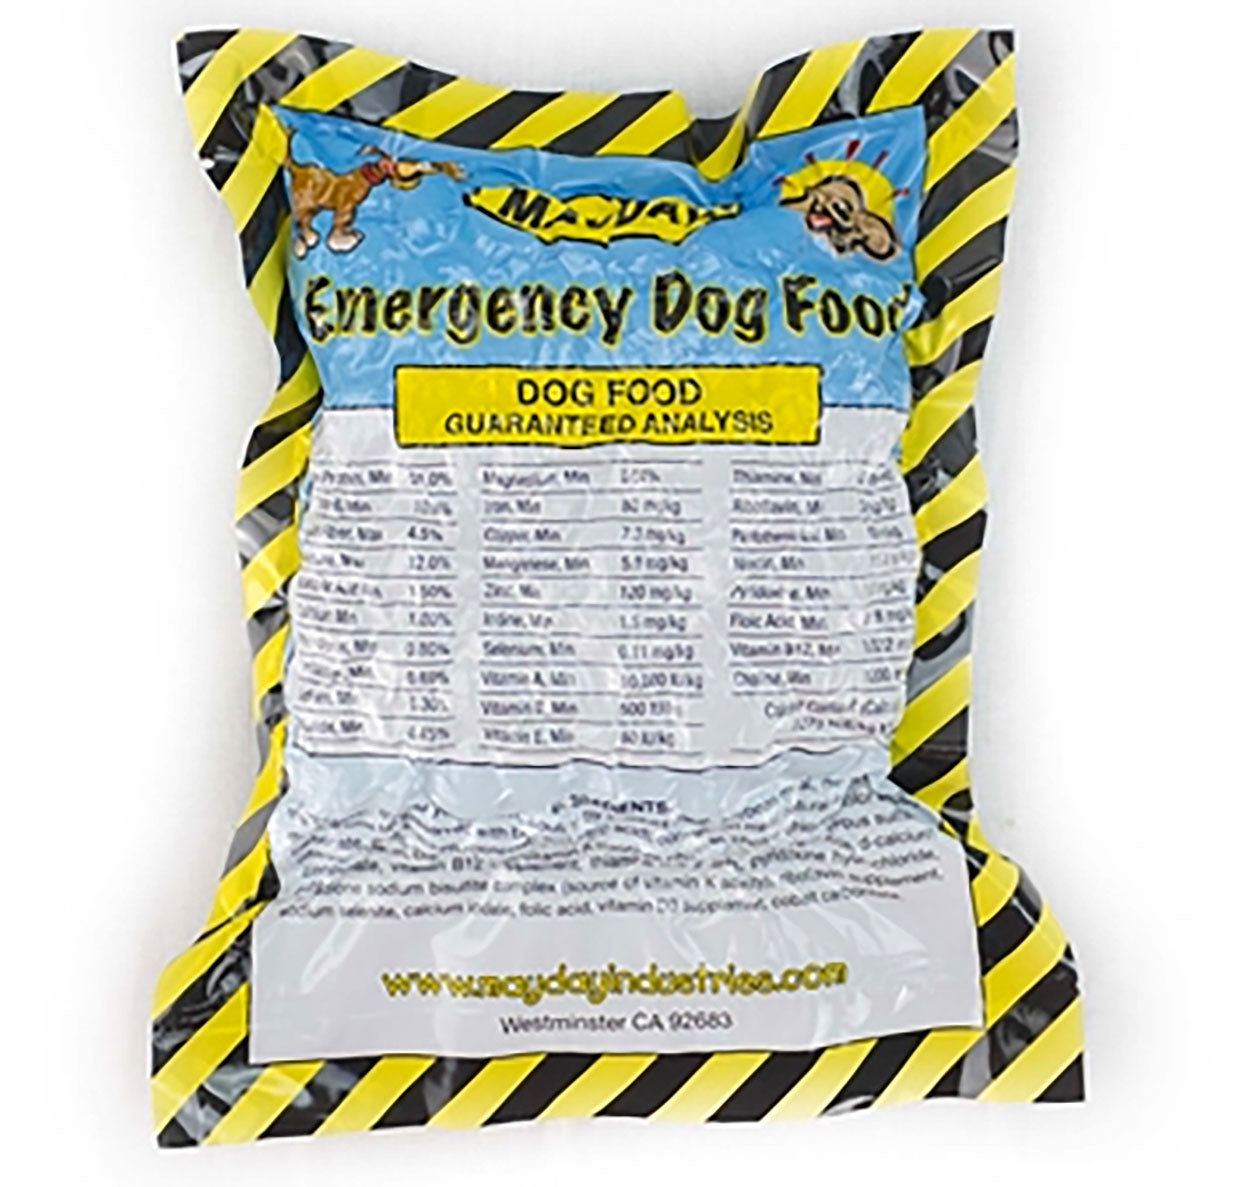 Emergency Survival Dog Food 8oz Five Year Shelf Life